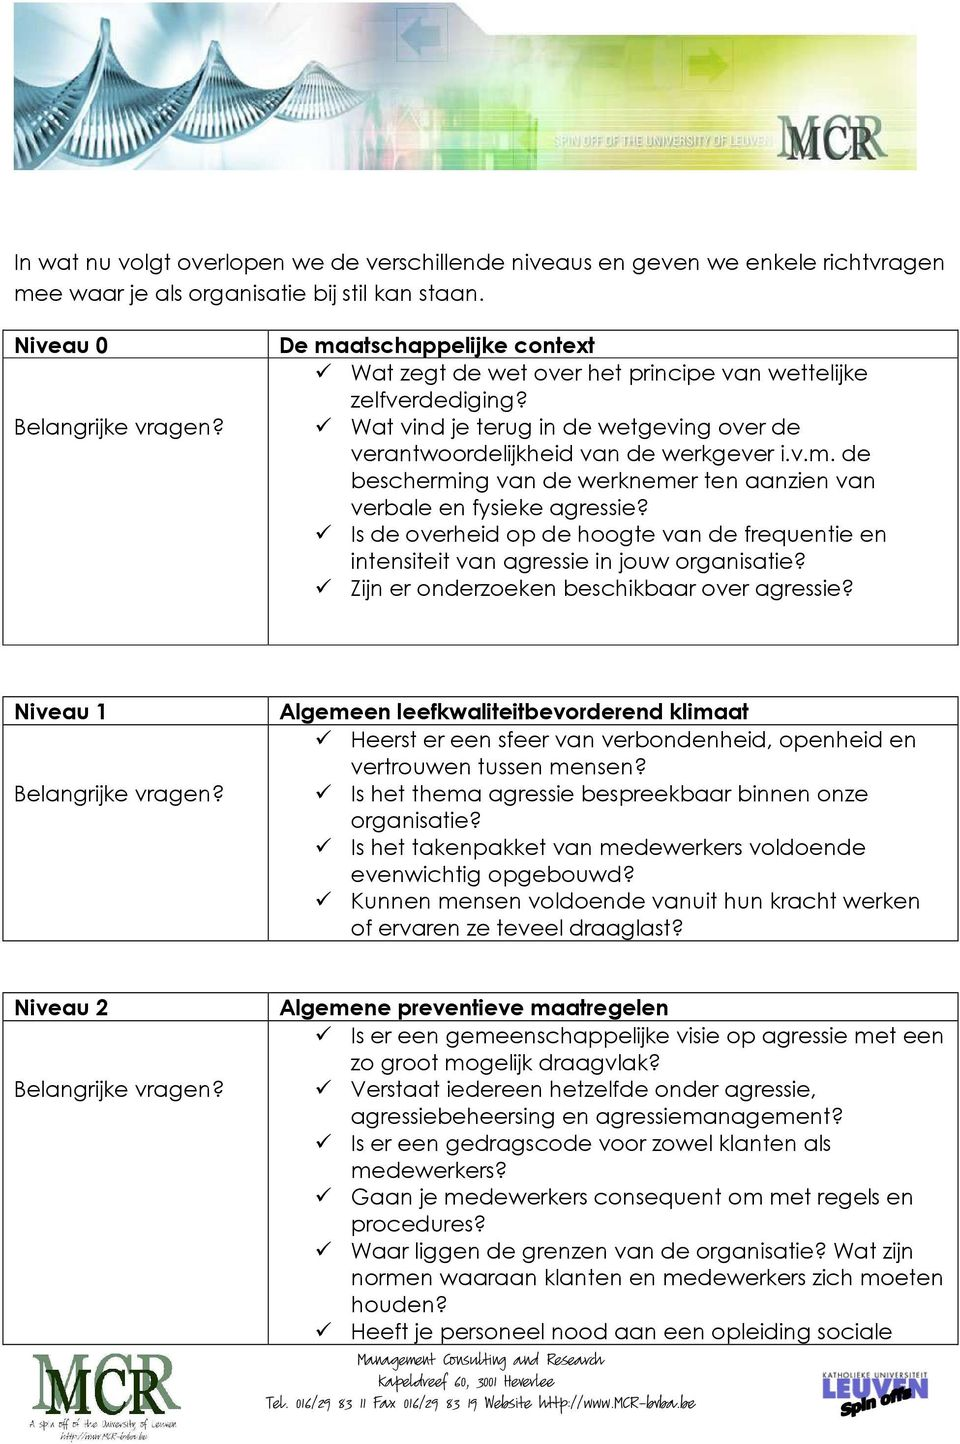 Is de verheid p de hgte van de frequentie en intensiteit van agressie in juw rganisatie? Zijn er nderzeken beschikbaar ver agressie? Niveau 1 Belangrijke vragen?